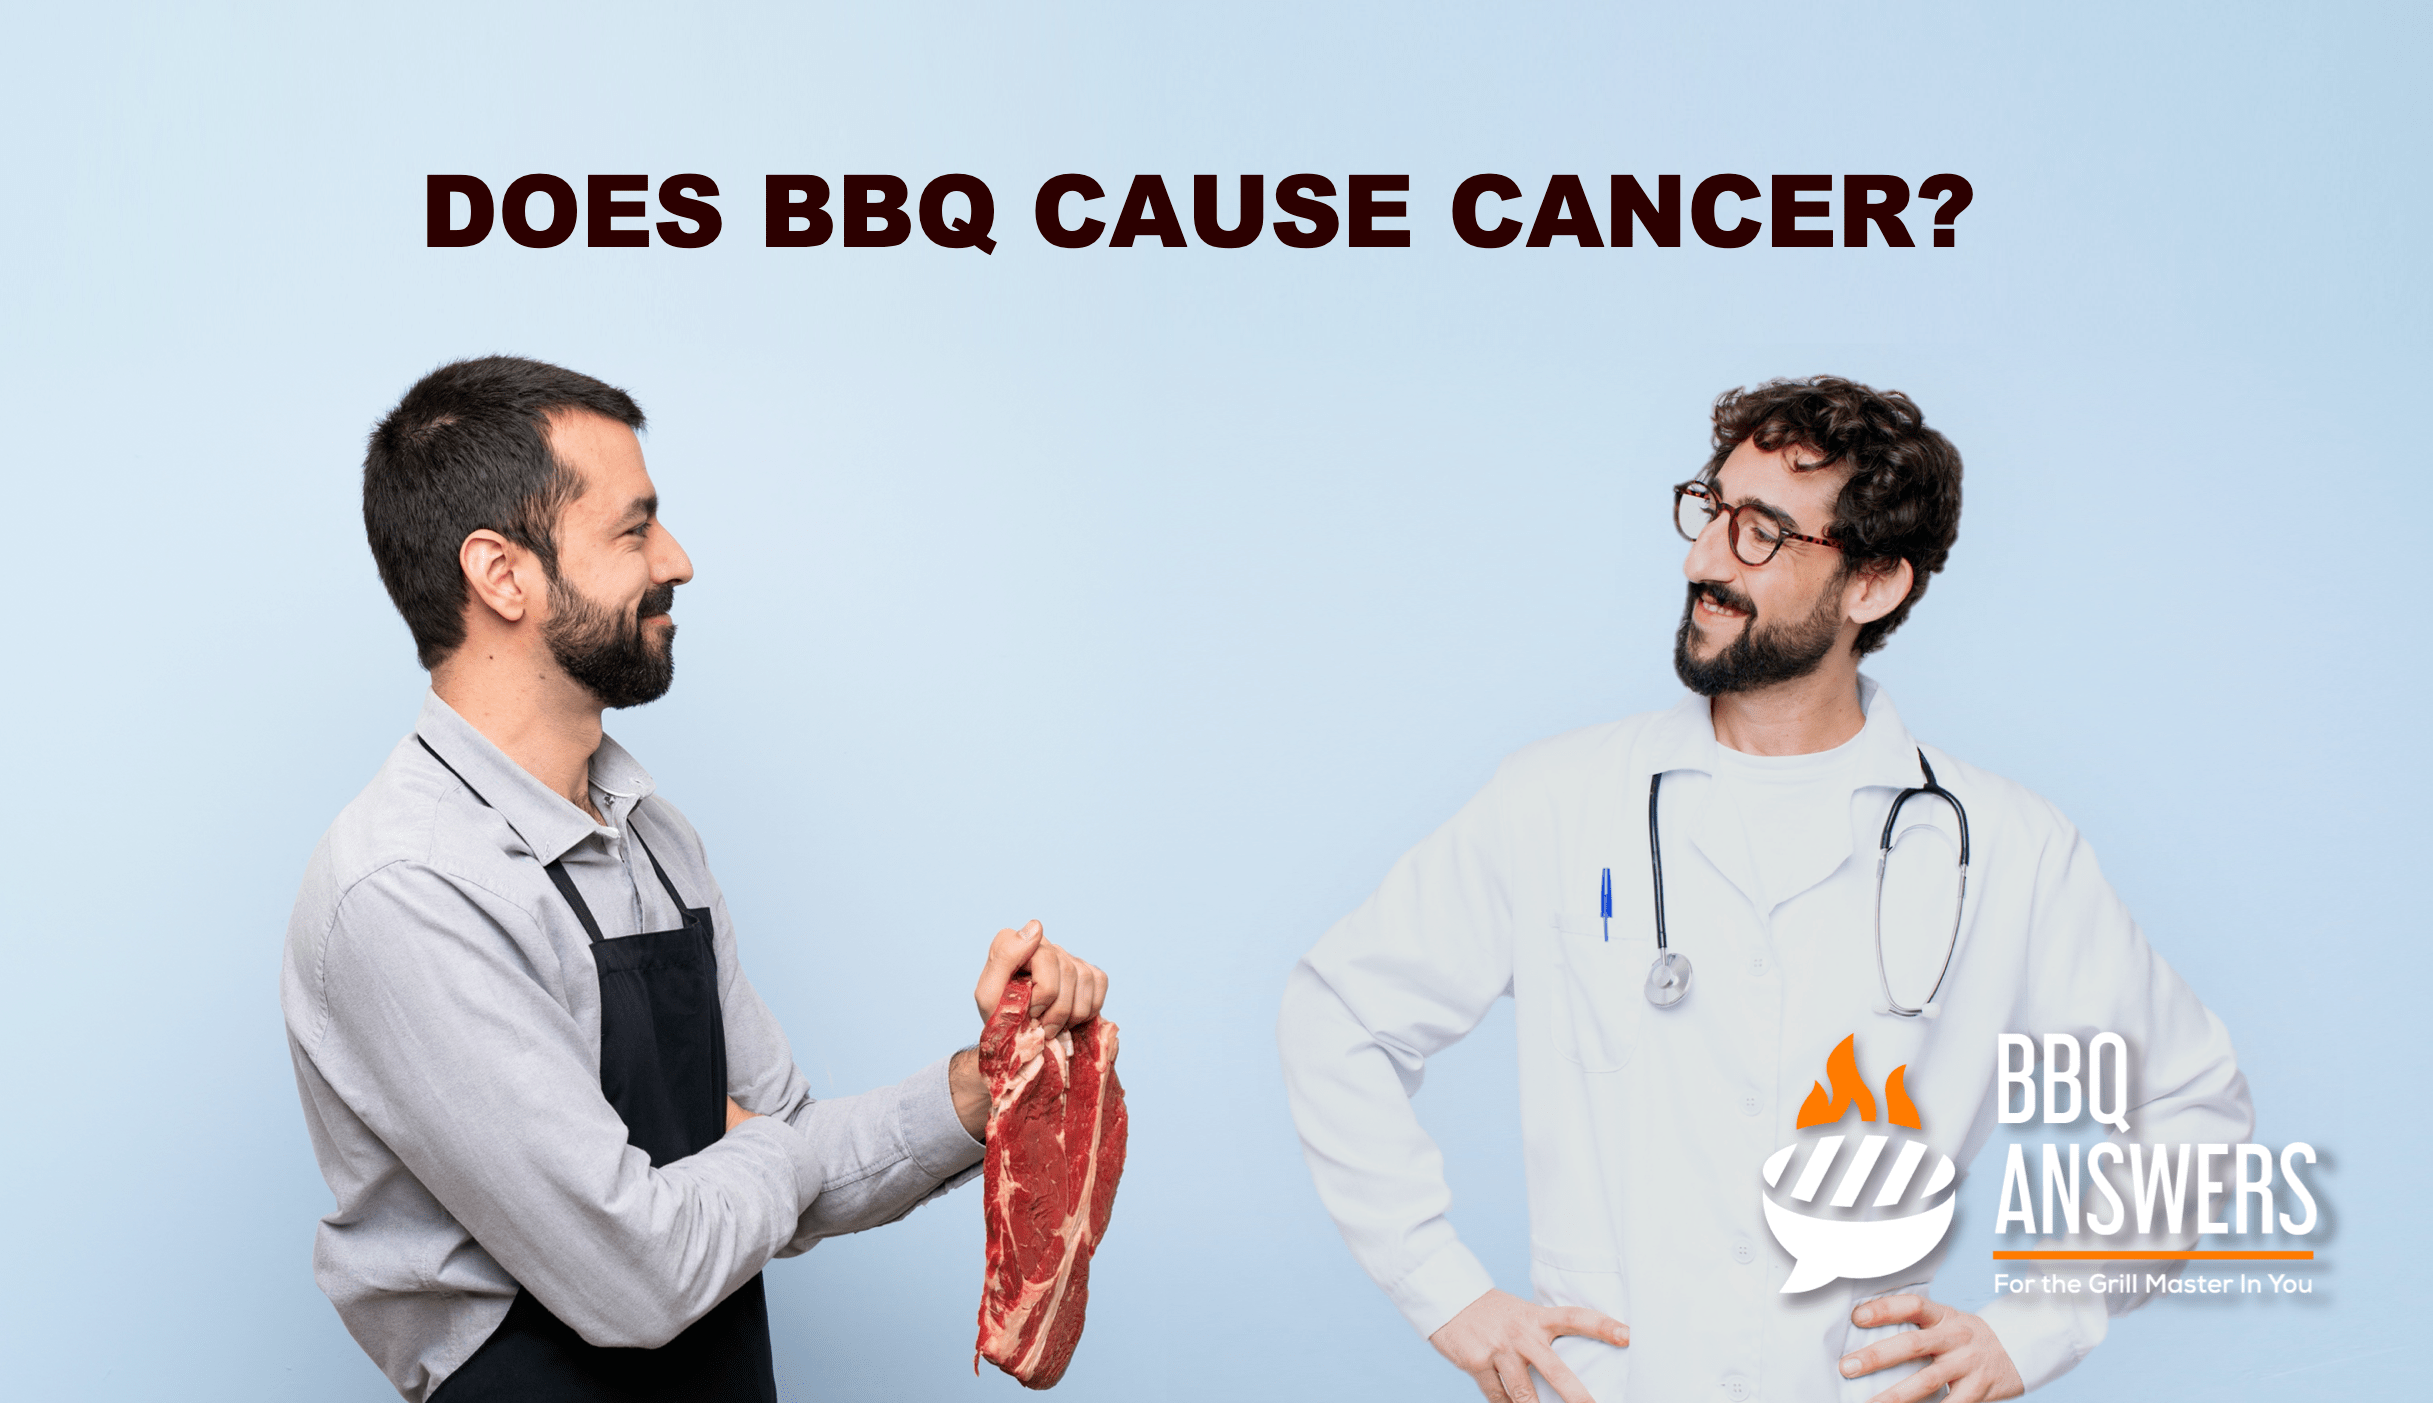 Does BBQ Cause Cancer? And How to Reduce the Risk?